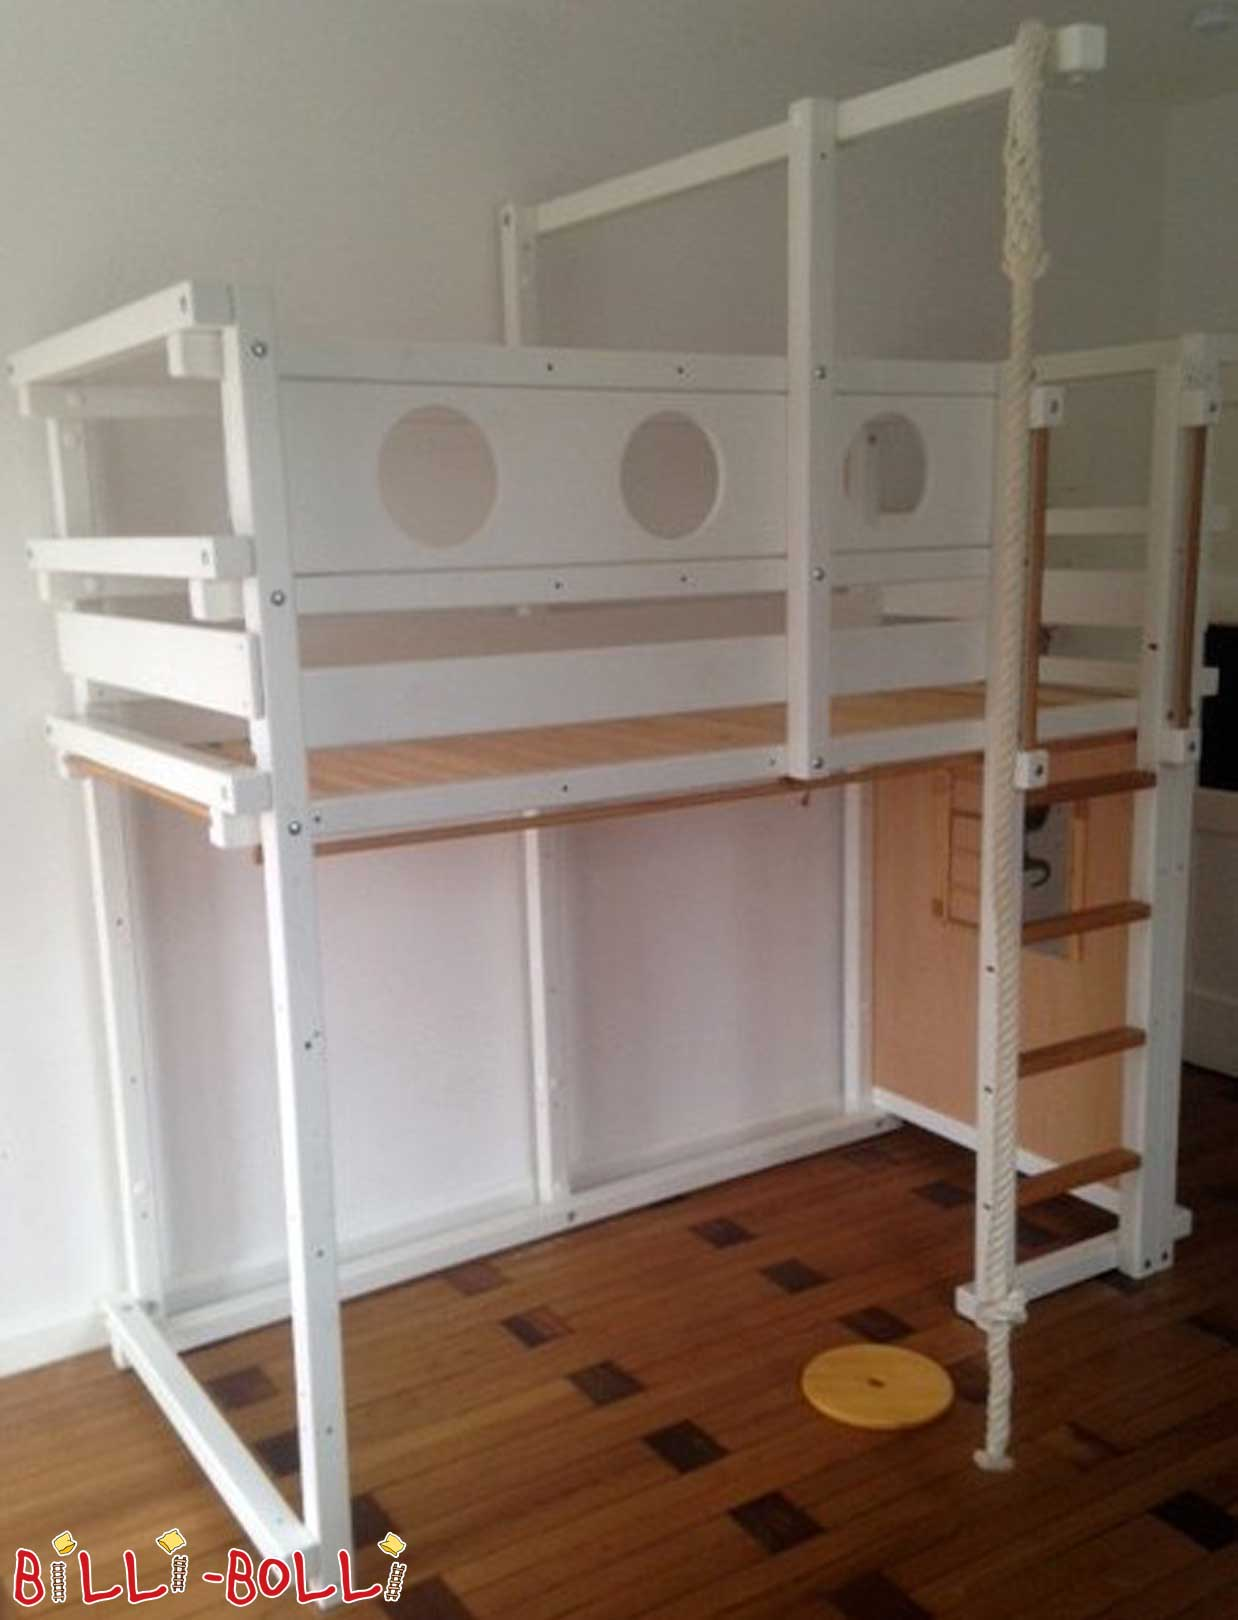 Co-growing high bed painted white (second hand loft bed)